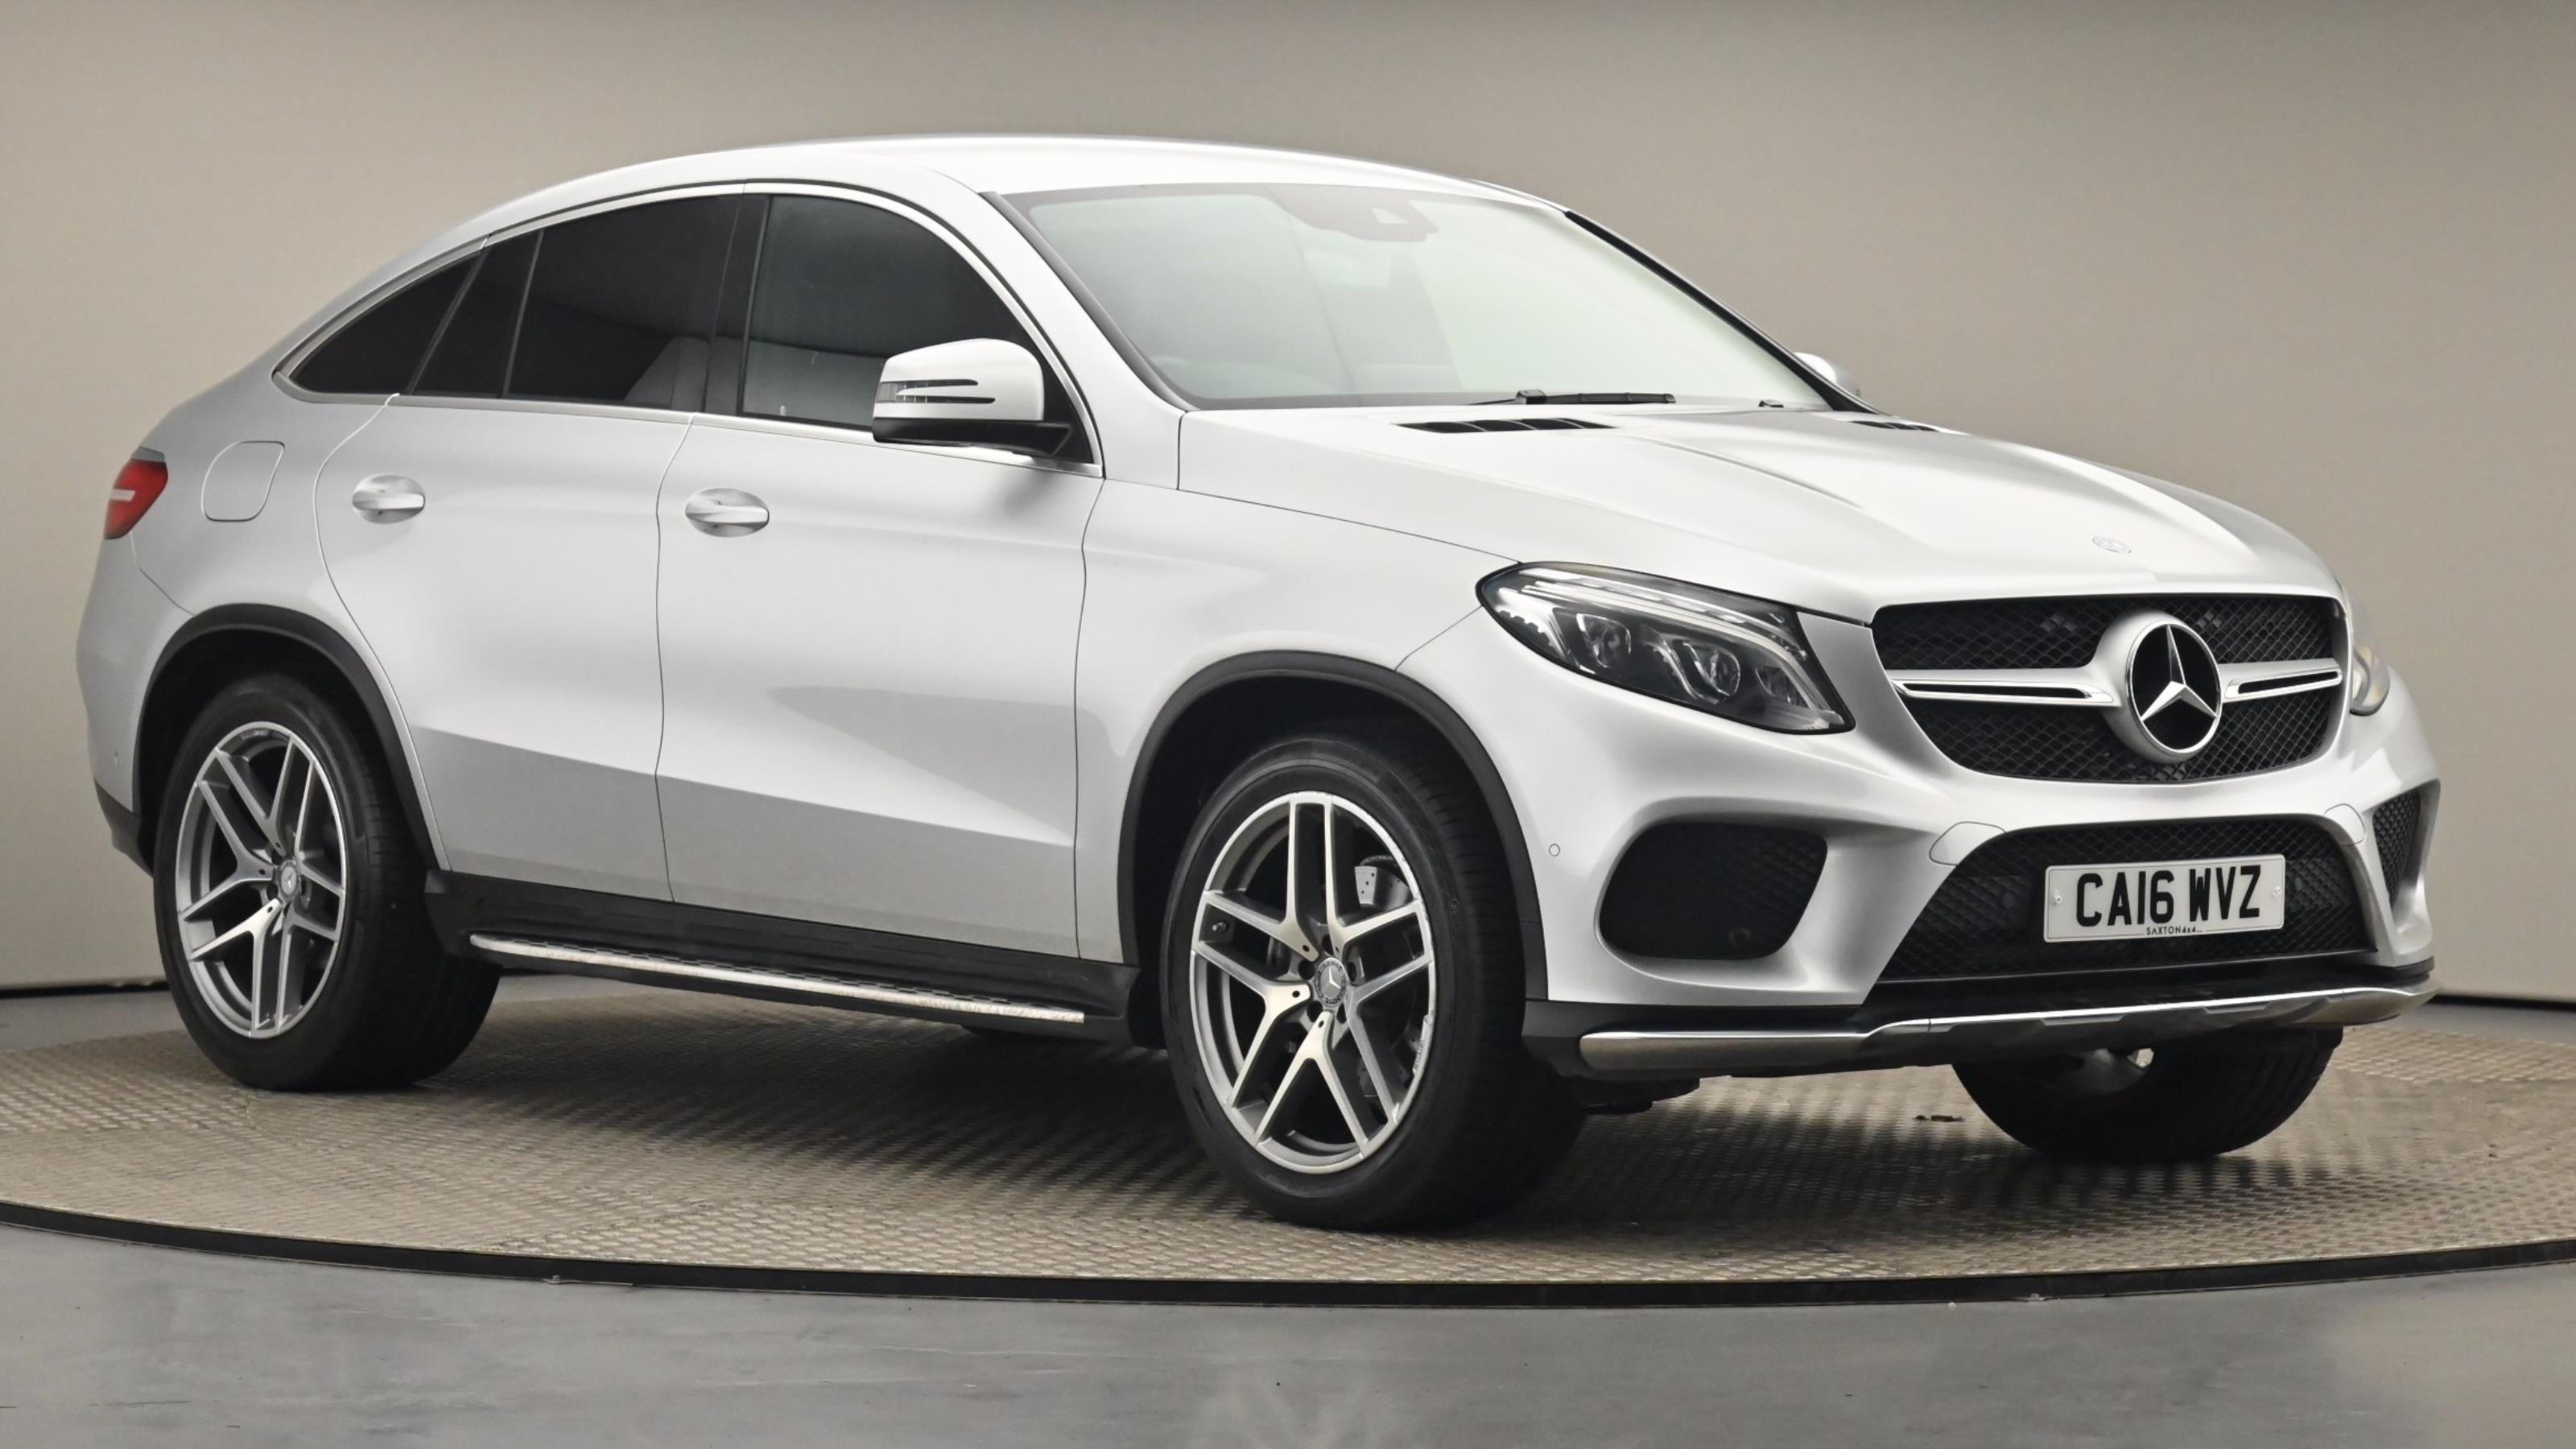 Used 2016 Mercedes-Benz GLE COUPE GLE 350d 4Matic AMG Line 5dr 9G-Tronic SILVER at Saxton4x4